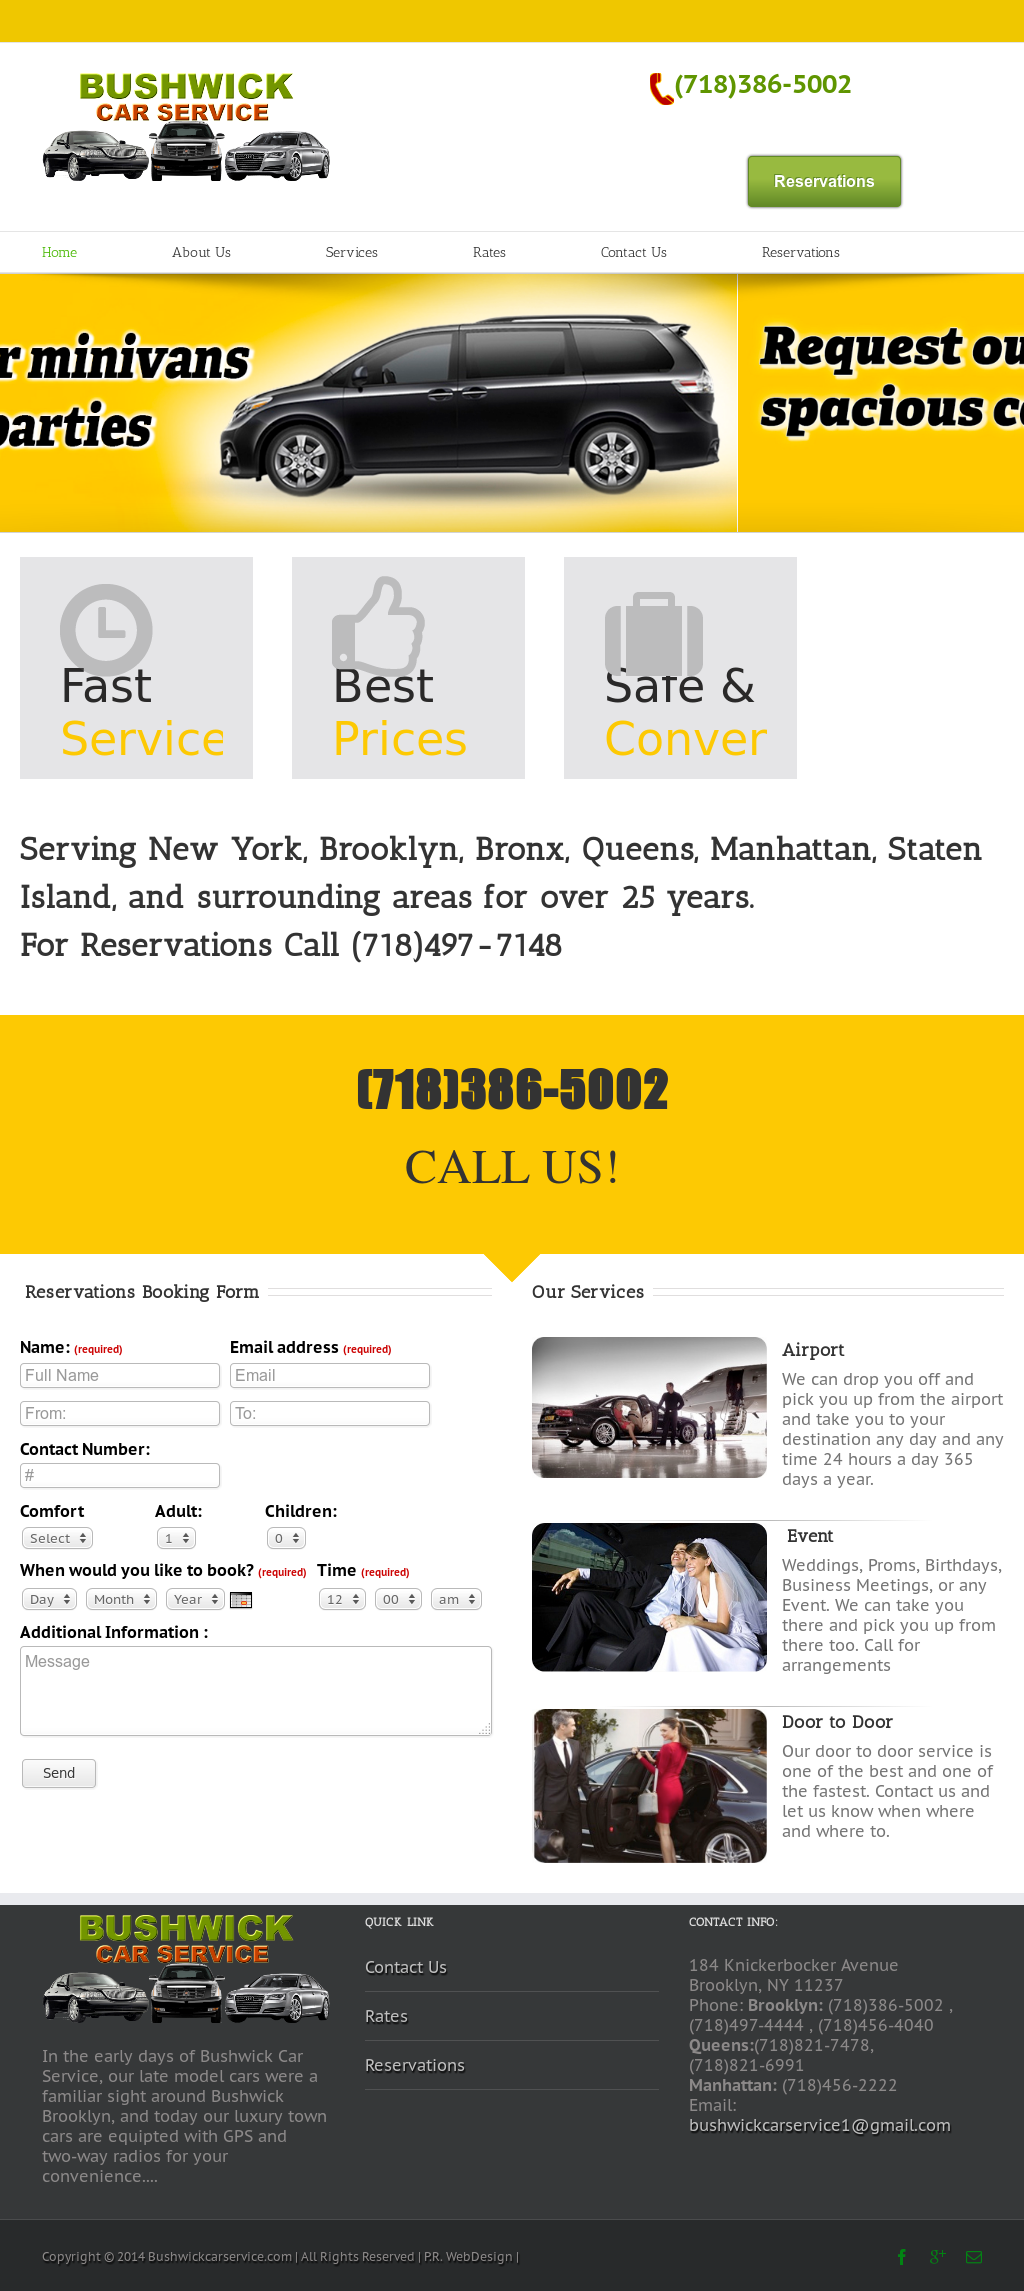 Bushwick Car Service >> Bushwick Car Service Competitors Revenue And Employees